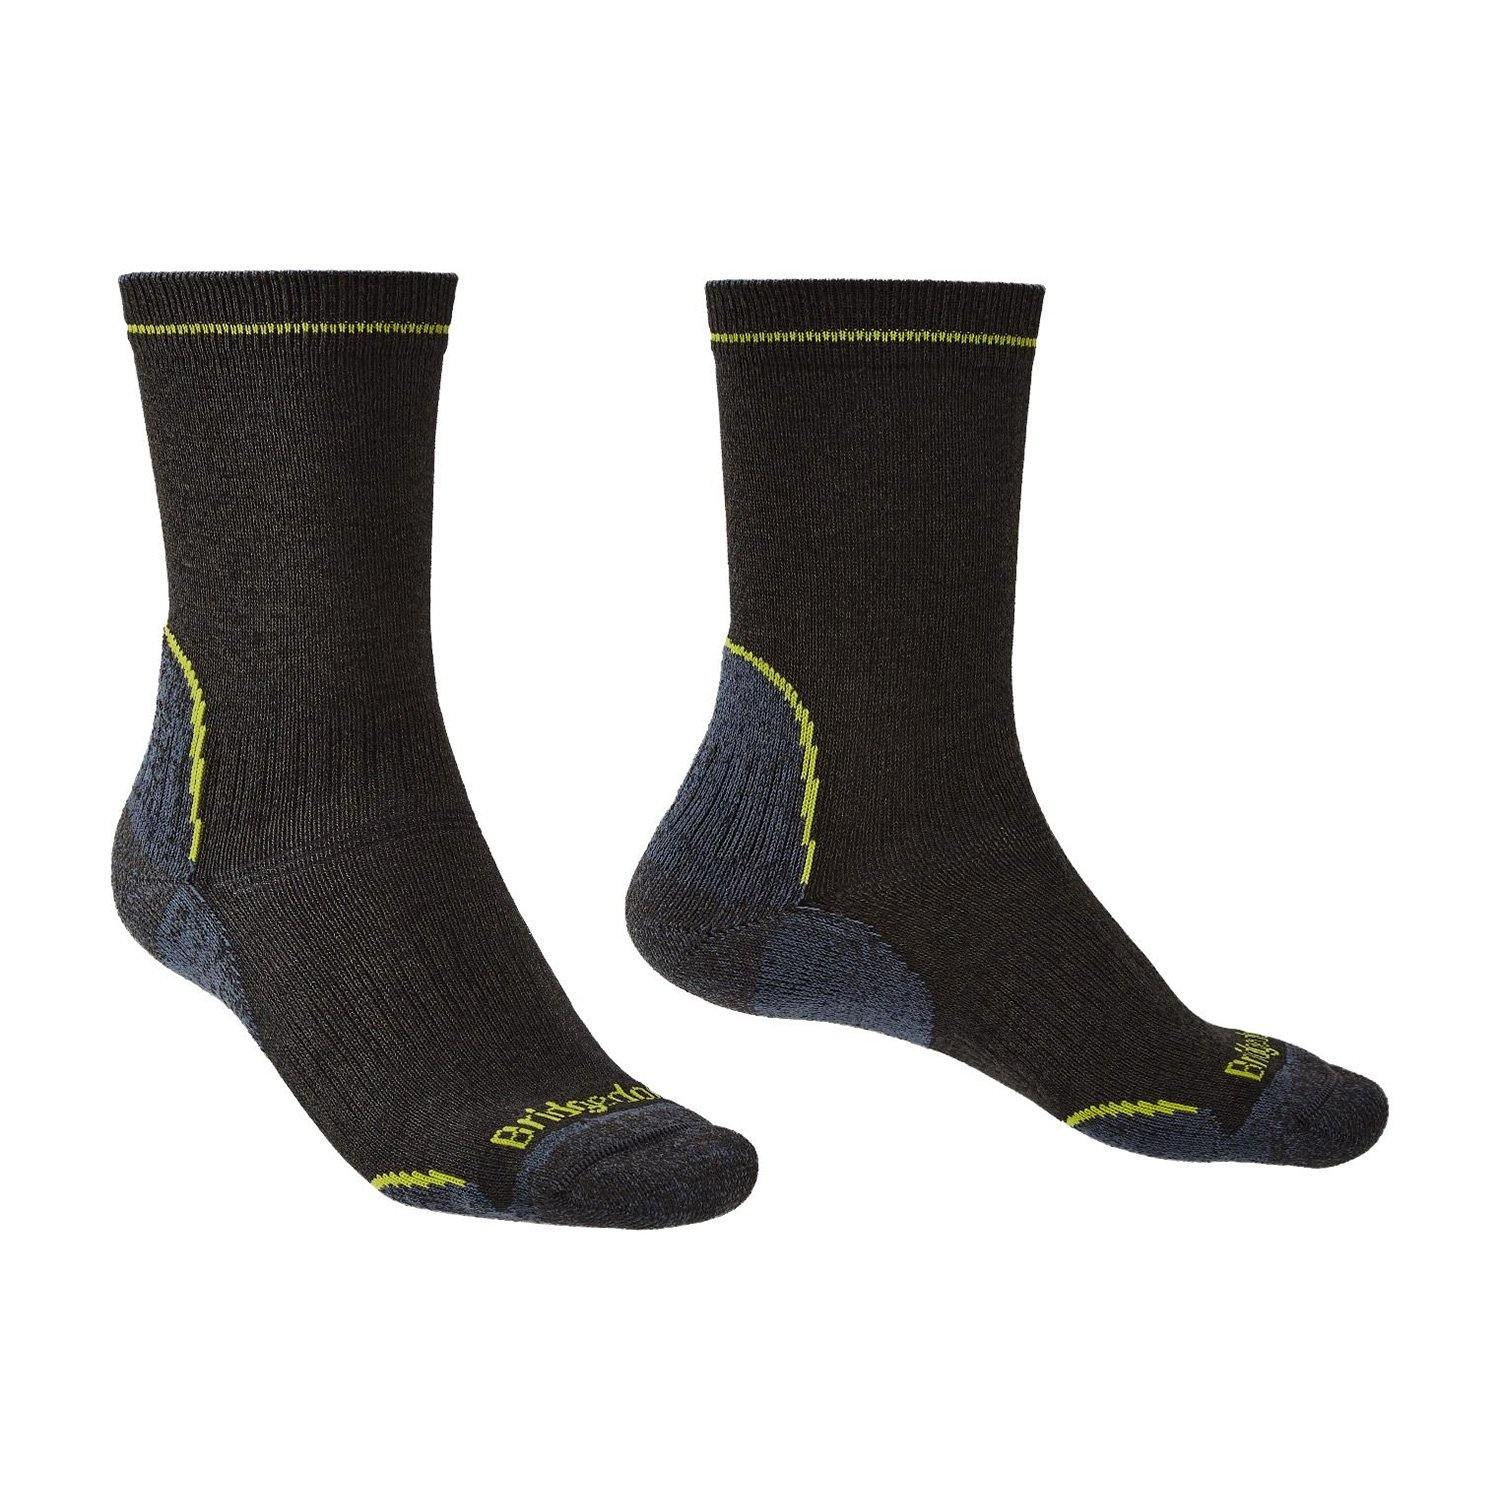 Bridgedale Men's COOLMAX Performance Light HIKE Socks